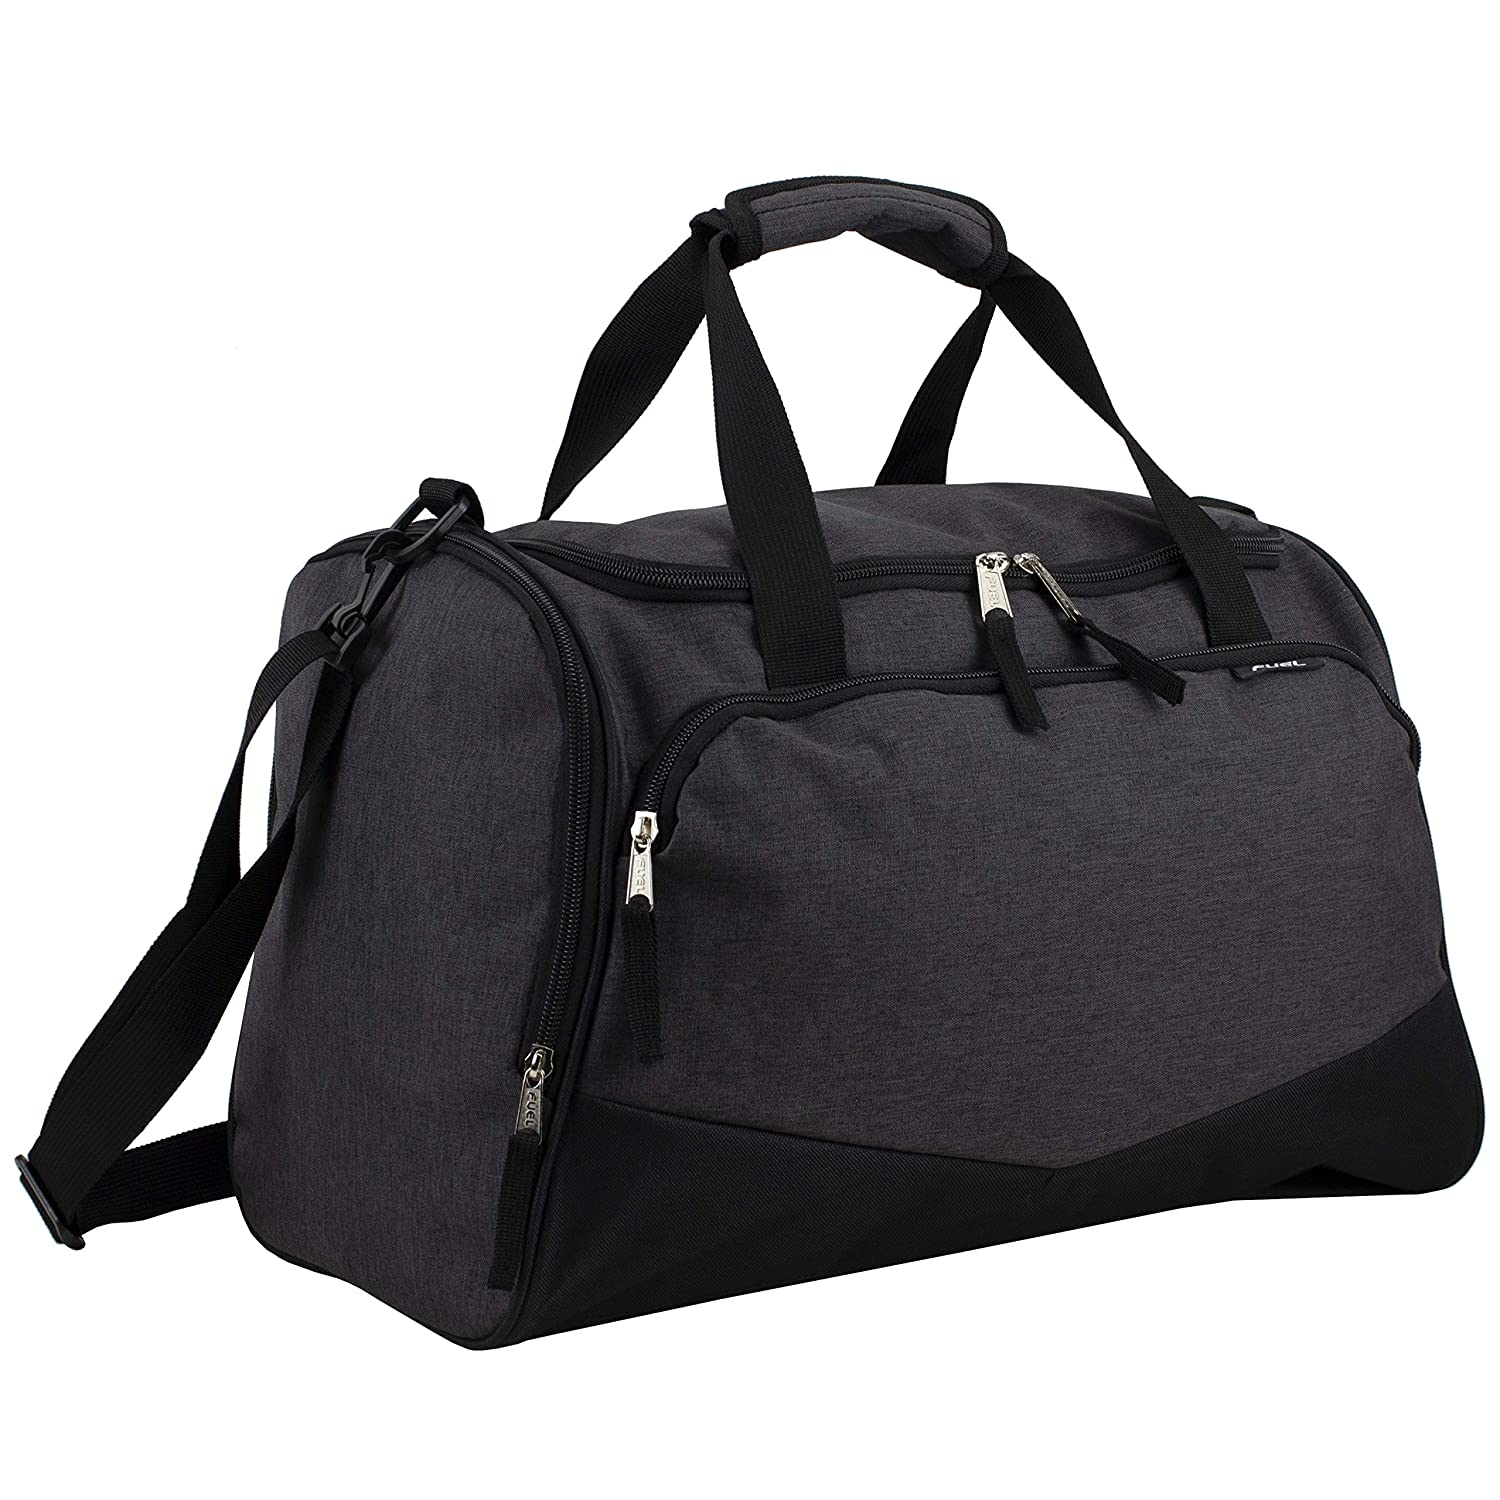 Fuel Sport Multifunctional Lightweight Duffel, 17.5 , for Gym, Travels and Sports – Black Black Chambray